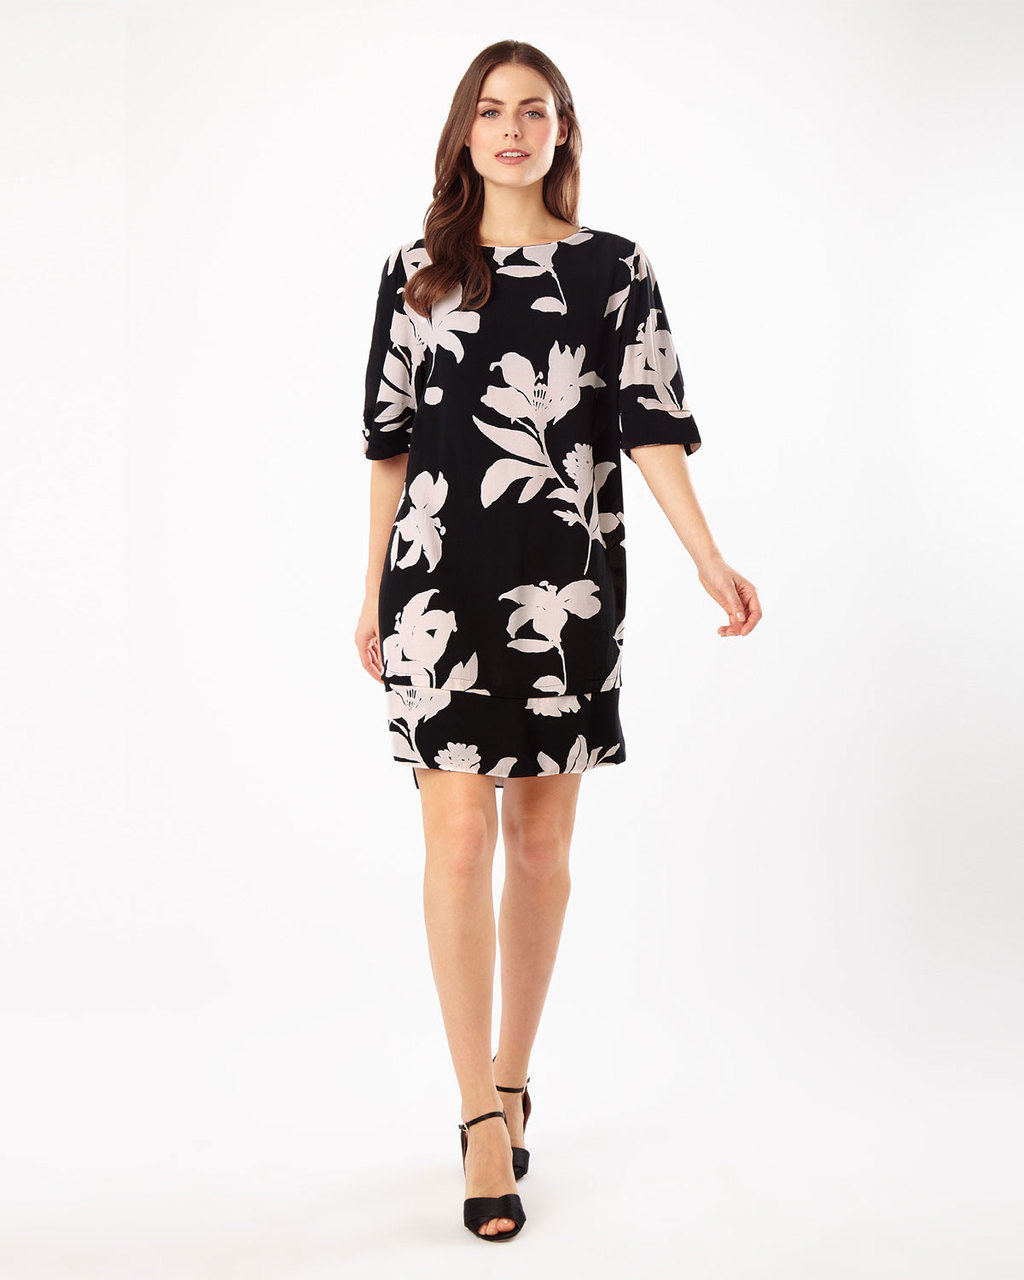 Selina Floral Swing Dress - style: tunic; length: mid thigh; neckline: round neck; sleeve style: dolman/batwing; secondary colour: blush; predominant colour: black; occasions: evening, creative work; fit: straight cut; fibres: polyester/polyamide - 100%; sleeve length: half sleeve; pattern type: fabric; pattern size: standard; pattern: florals; texture group: woven light midweight; season: s/s 2016; wardrobe: highlight